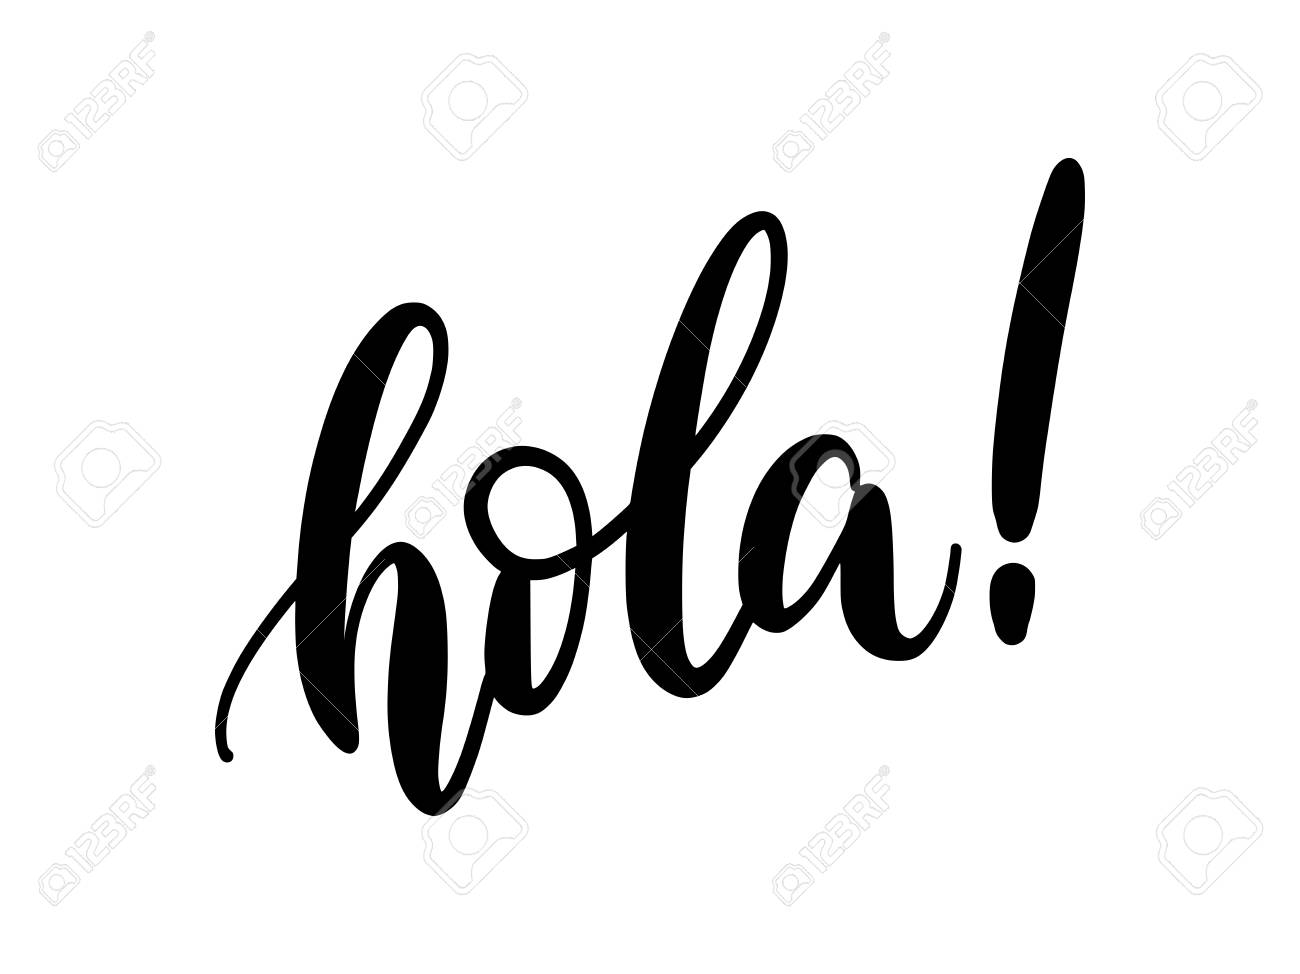 Hola word lettering. Hand drawn brush calligraphy. Vector illustration for print on shirt, card, poster etc. Black and white. Spanish text hello phrase. - 108439799